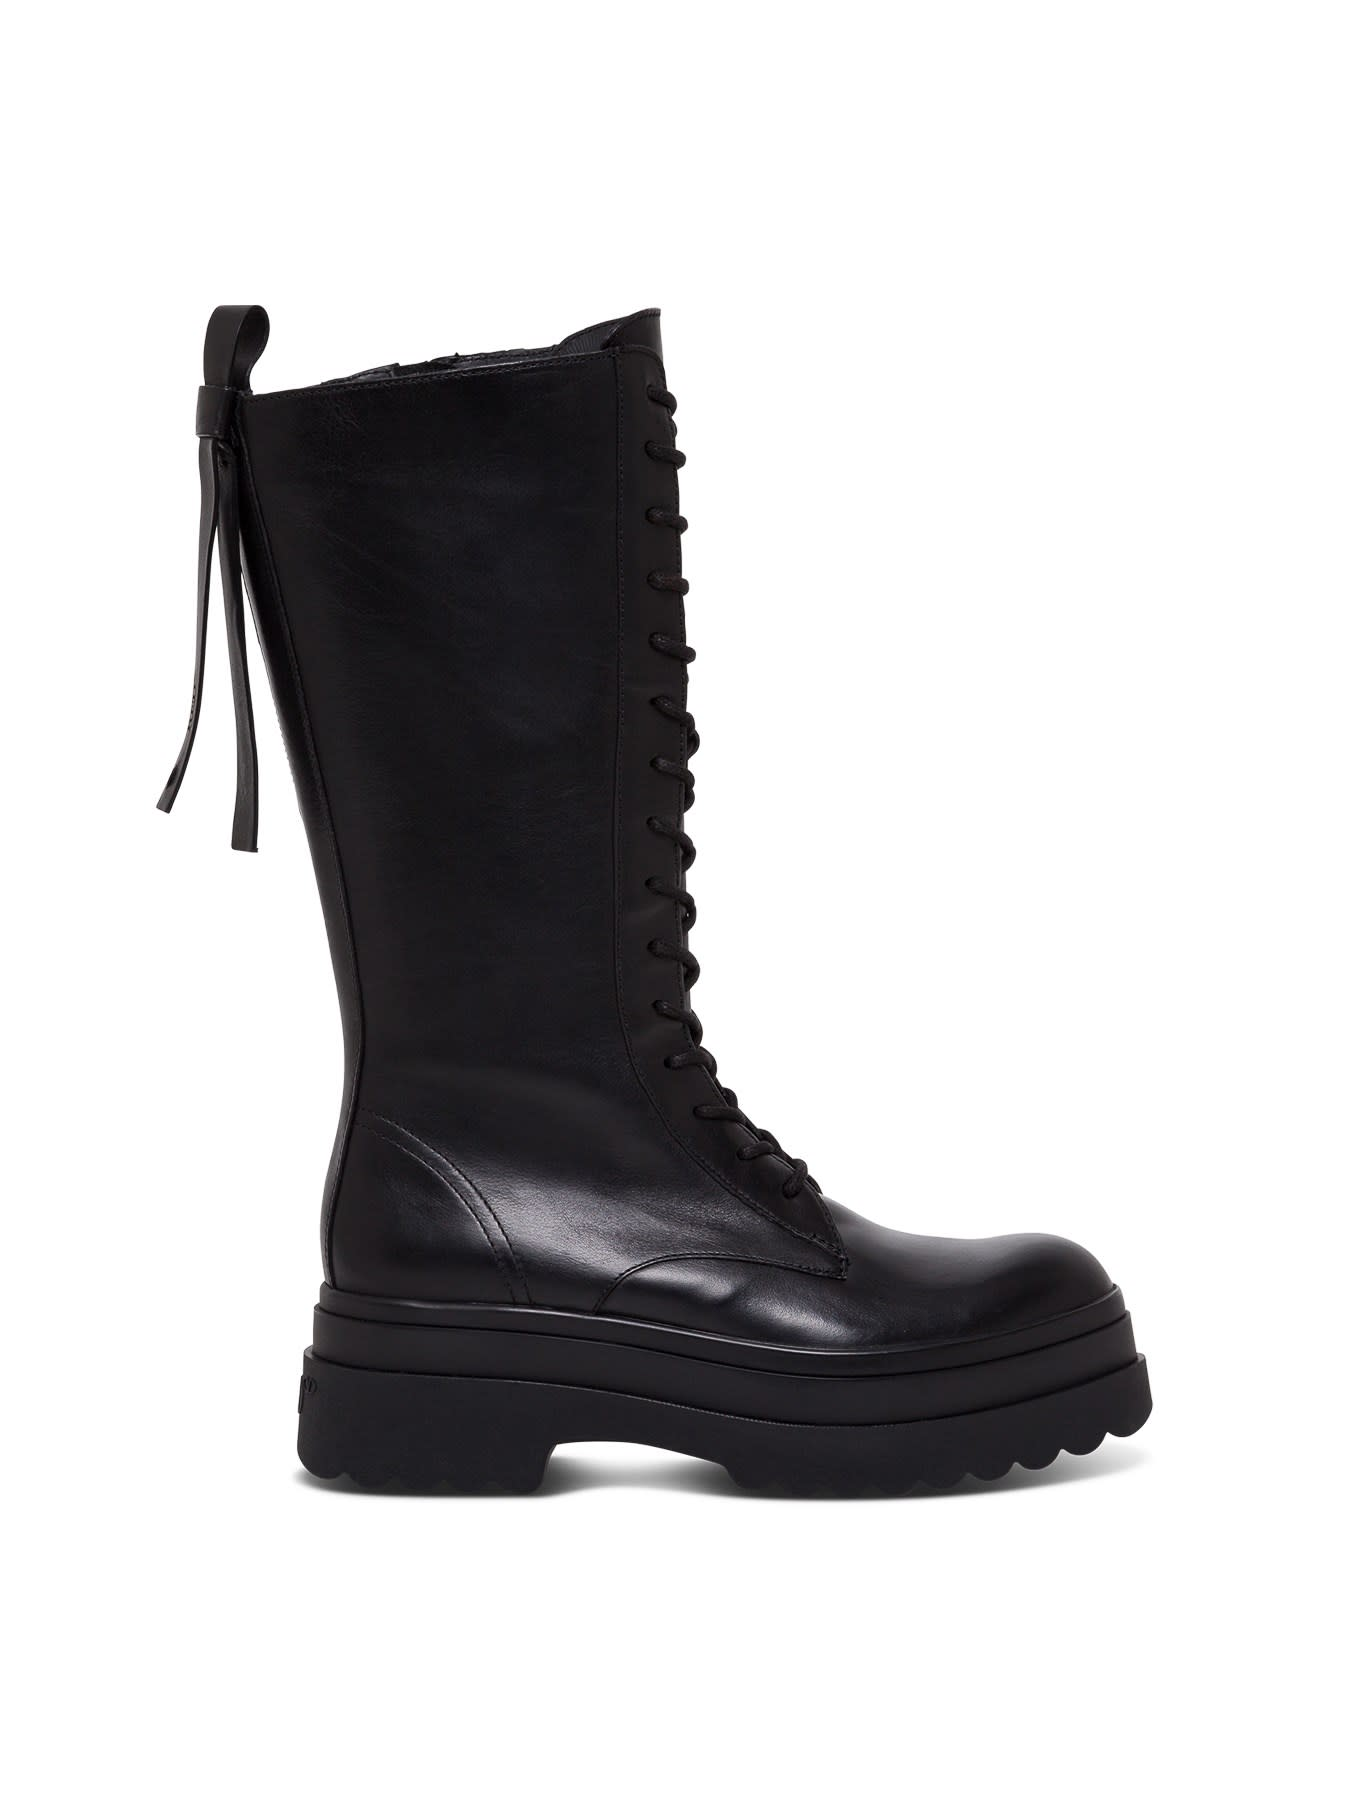 Shiny Black Leather Ankle Boot RED Valentino